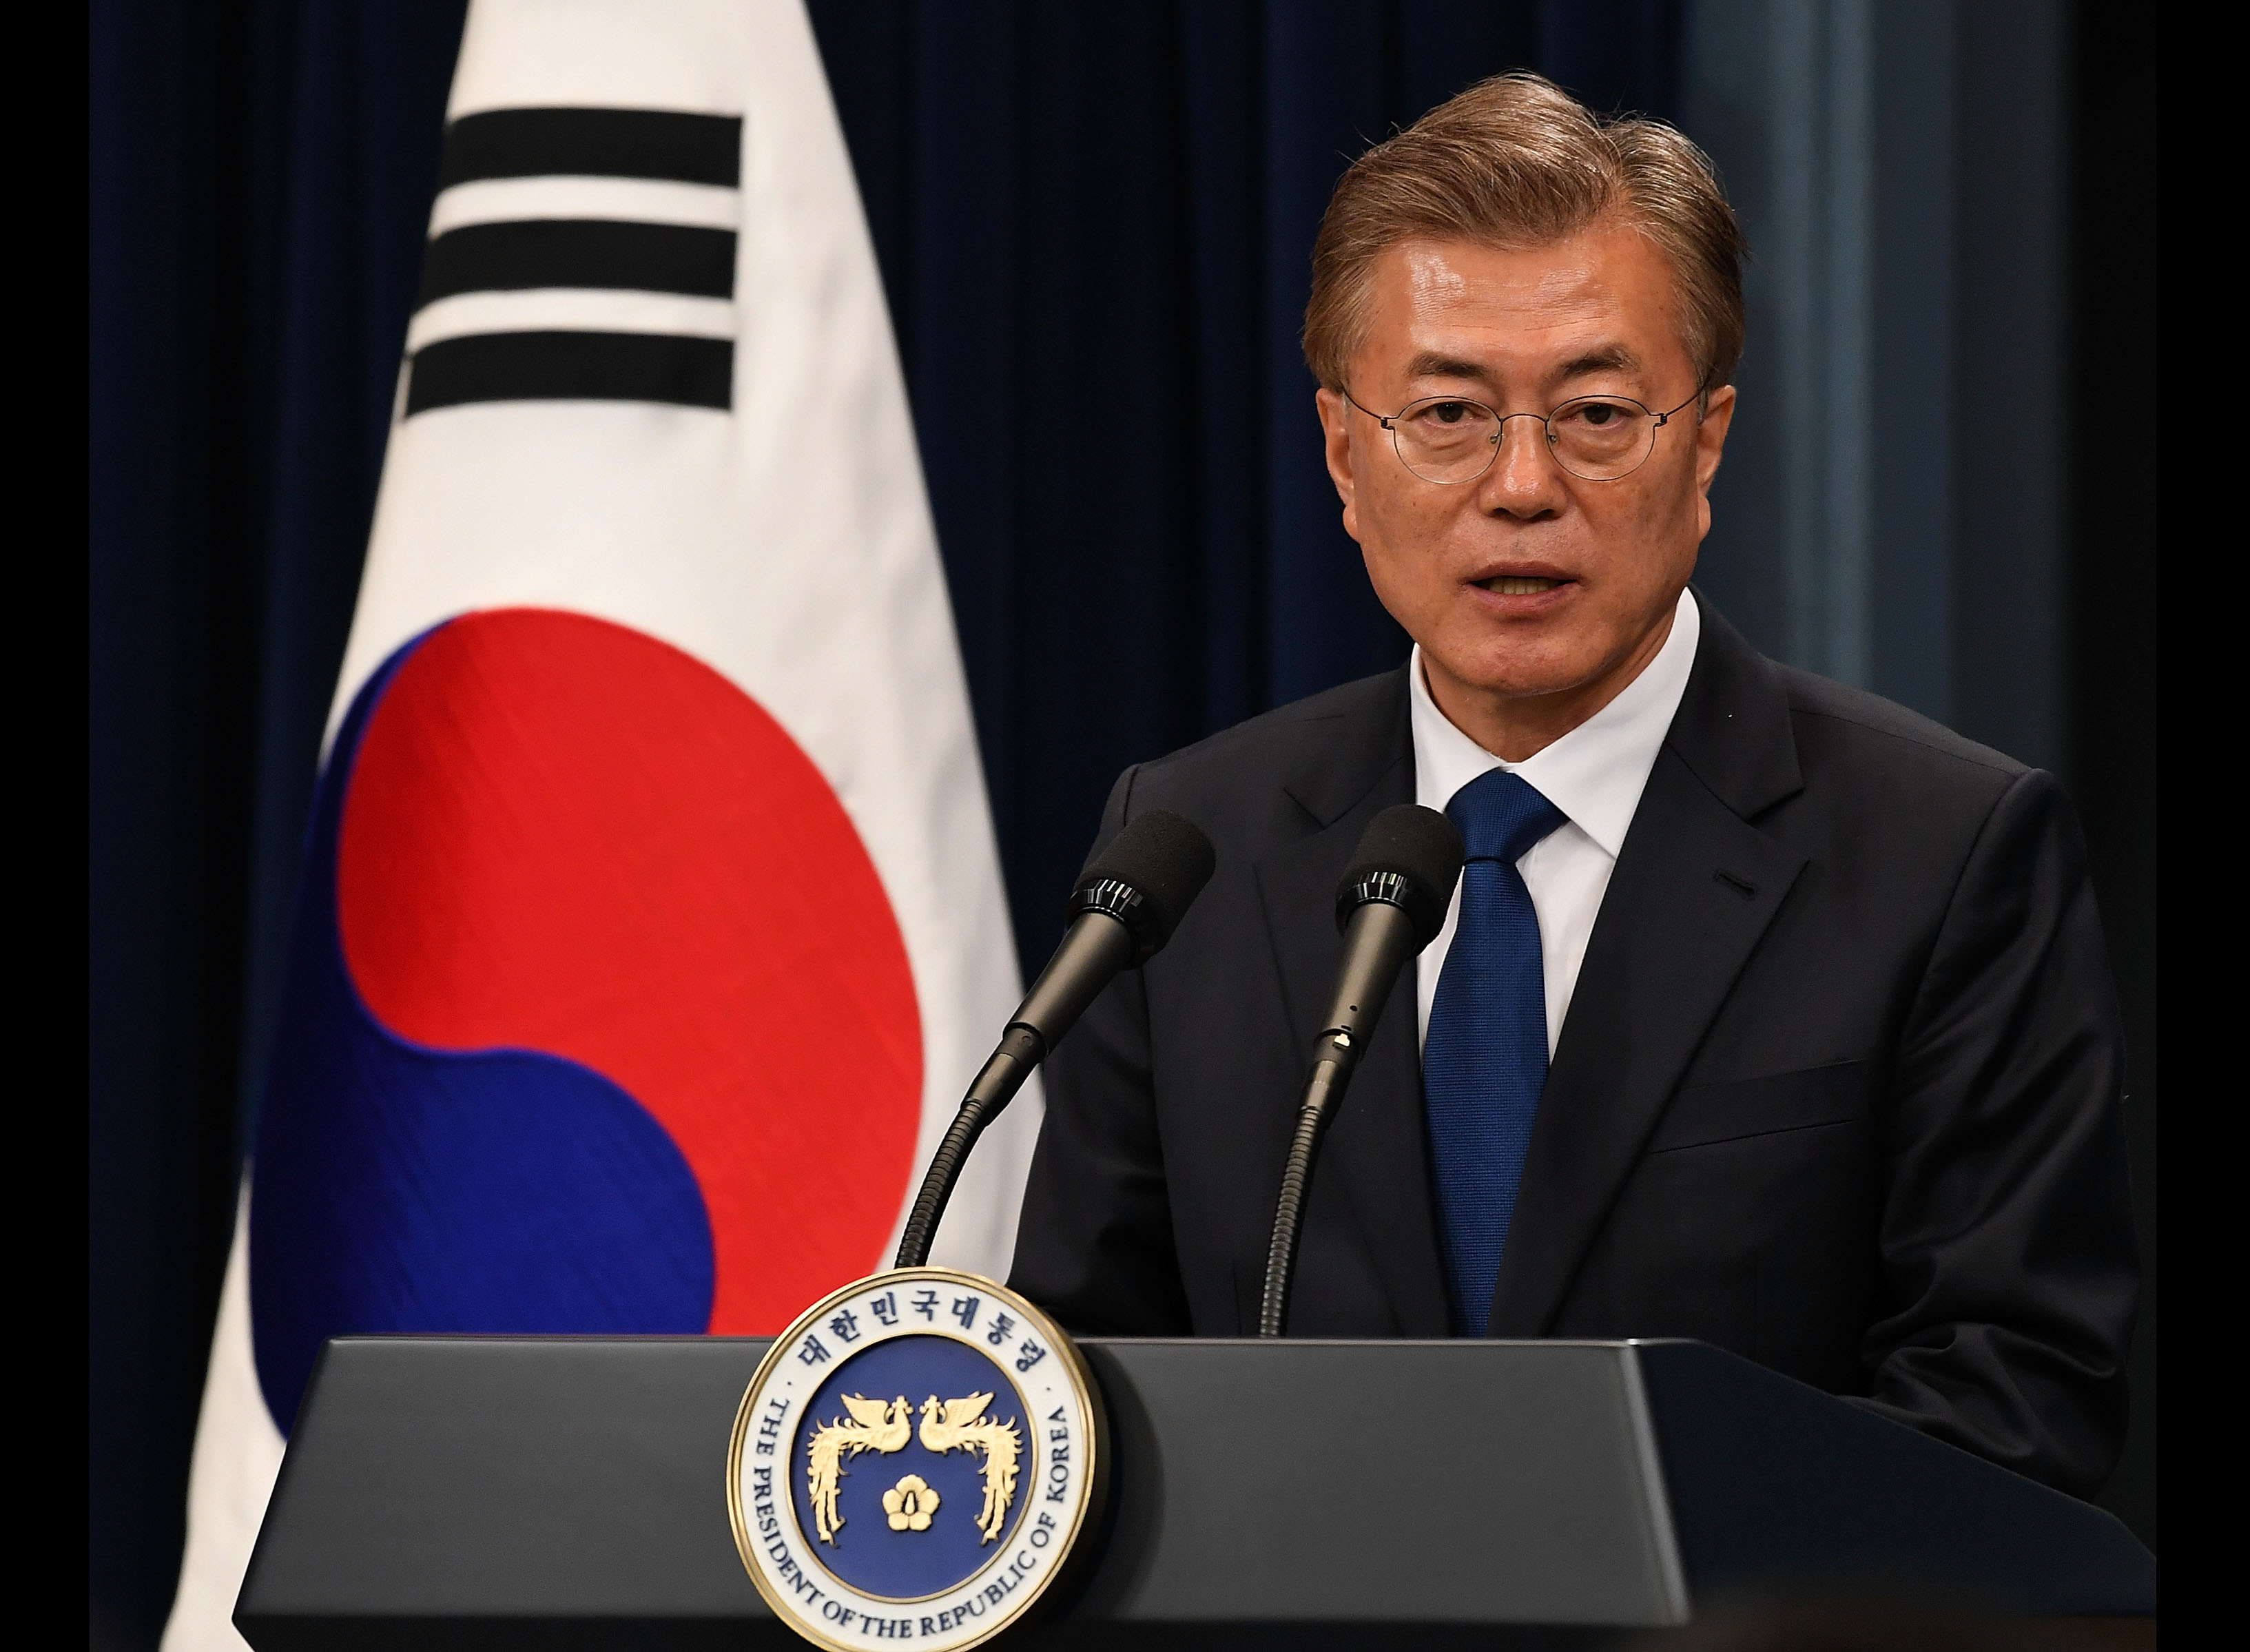 South Korea's new President Moon Jae-In speaks during a press conference at the presidential Blue House on May 10, 2017 in Seoul, South Korea.